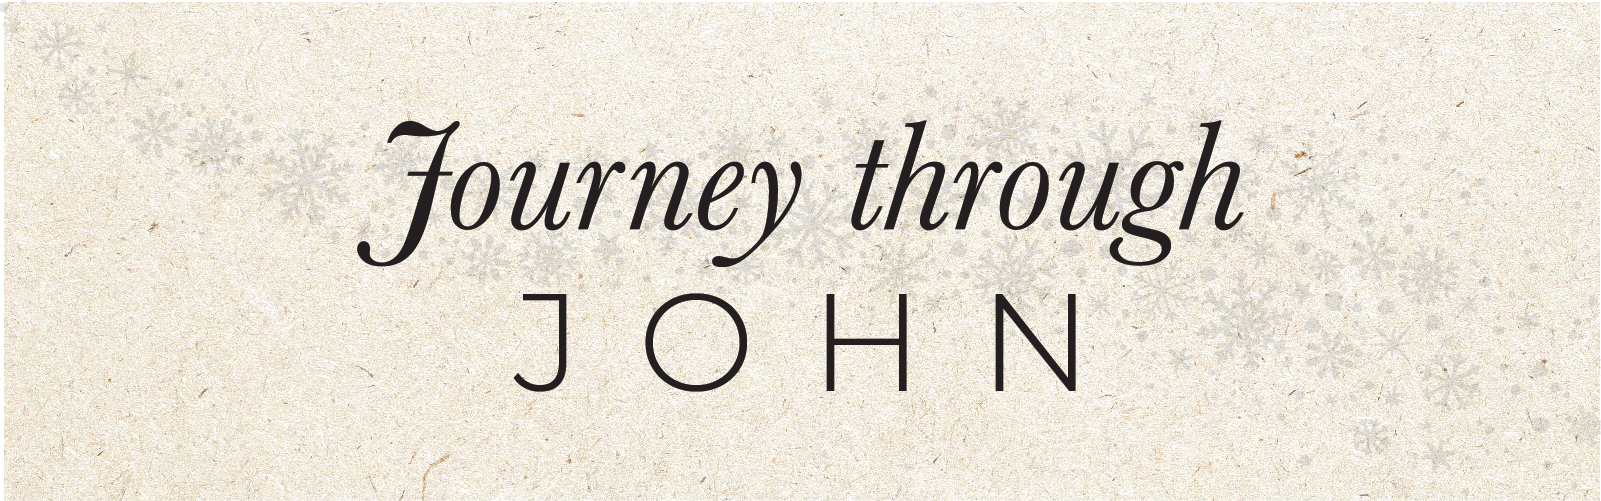 JourneythroughJohn_homepage_banner-01